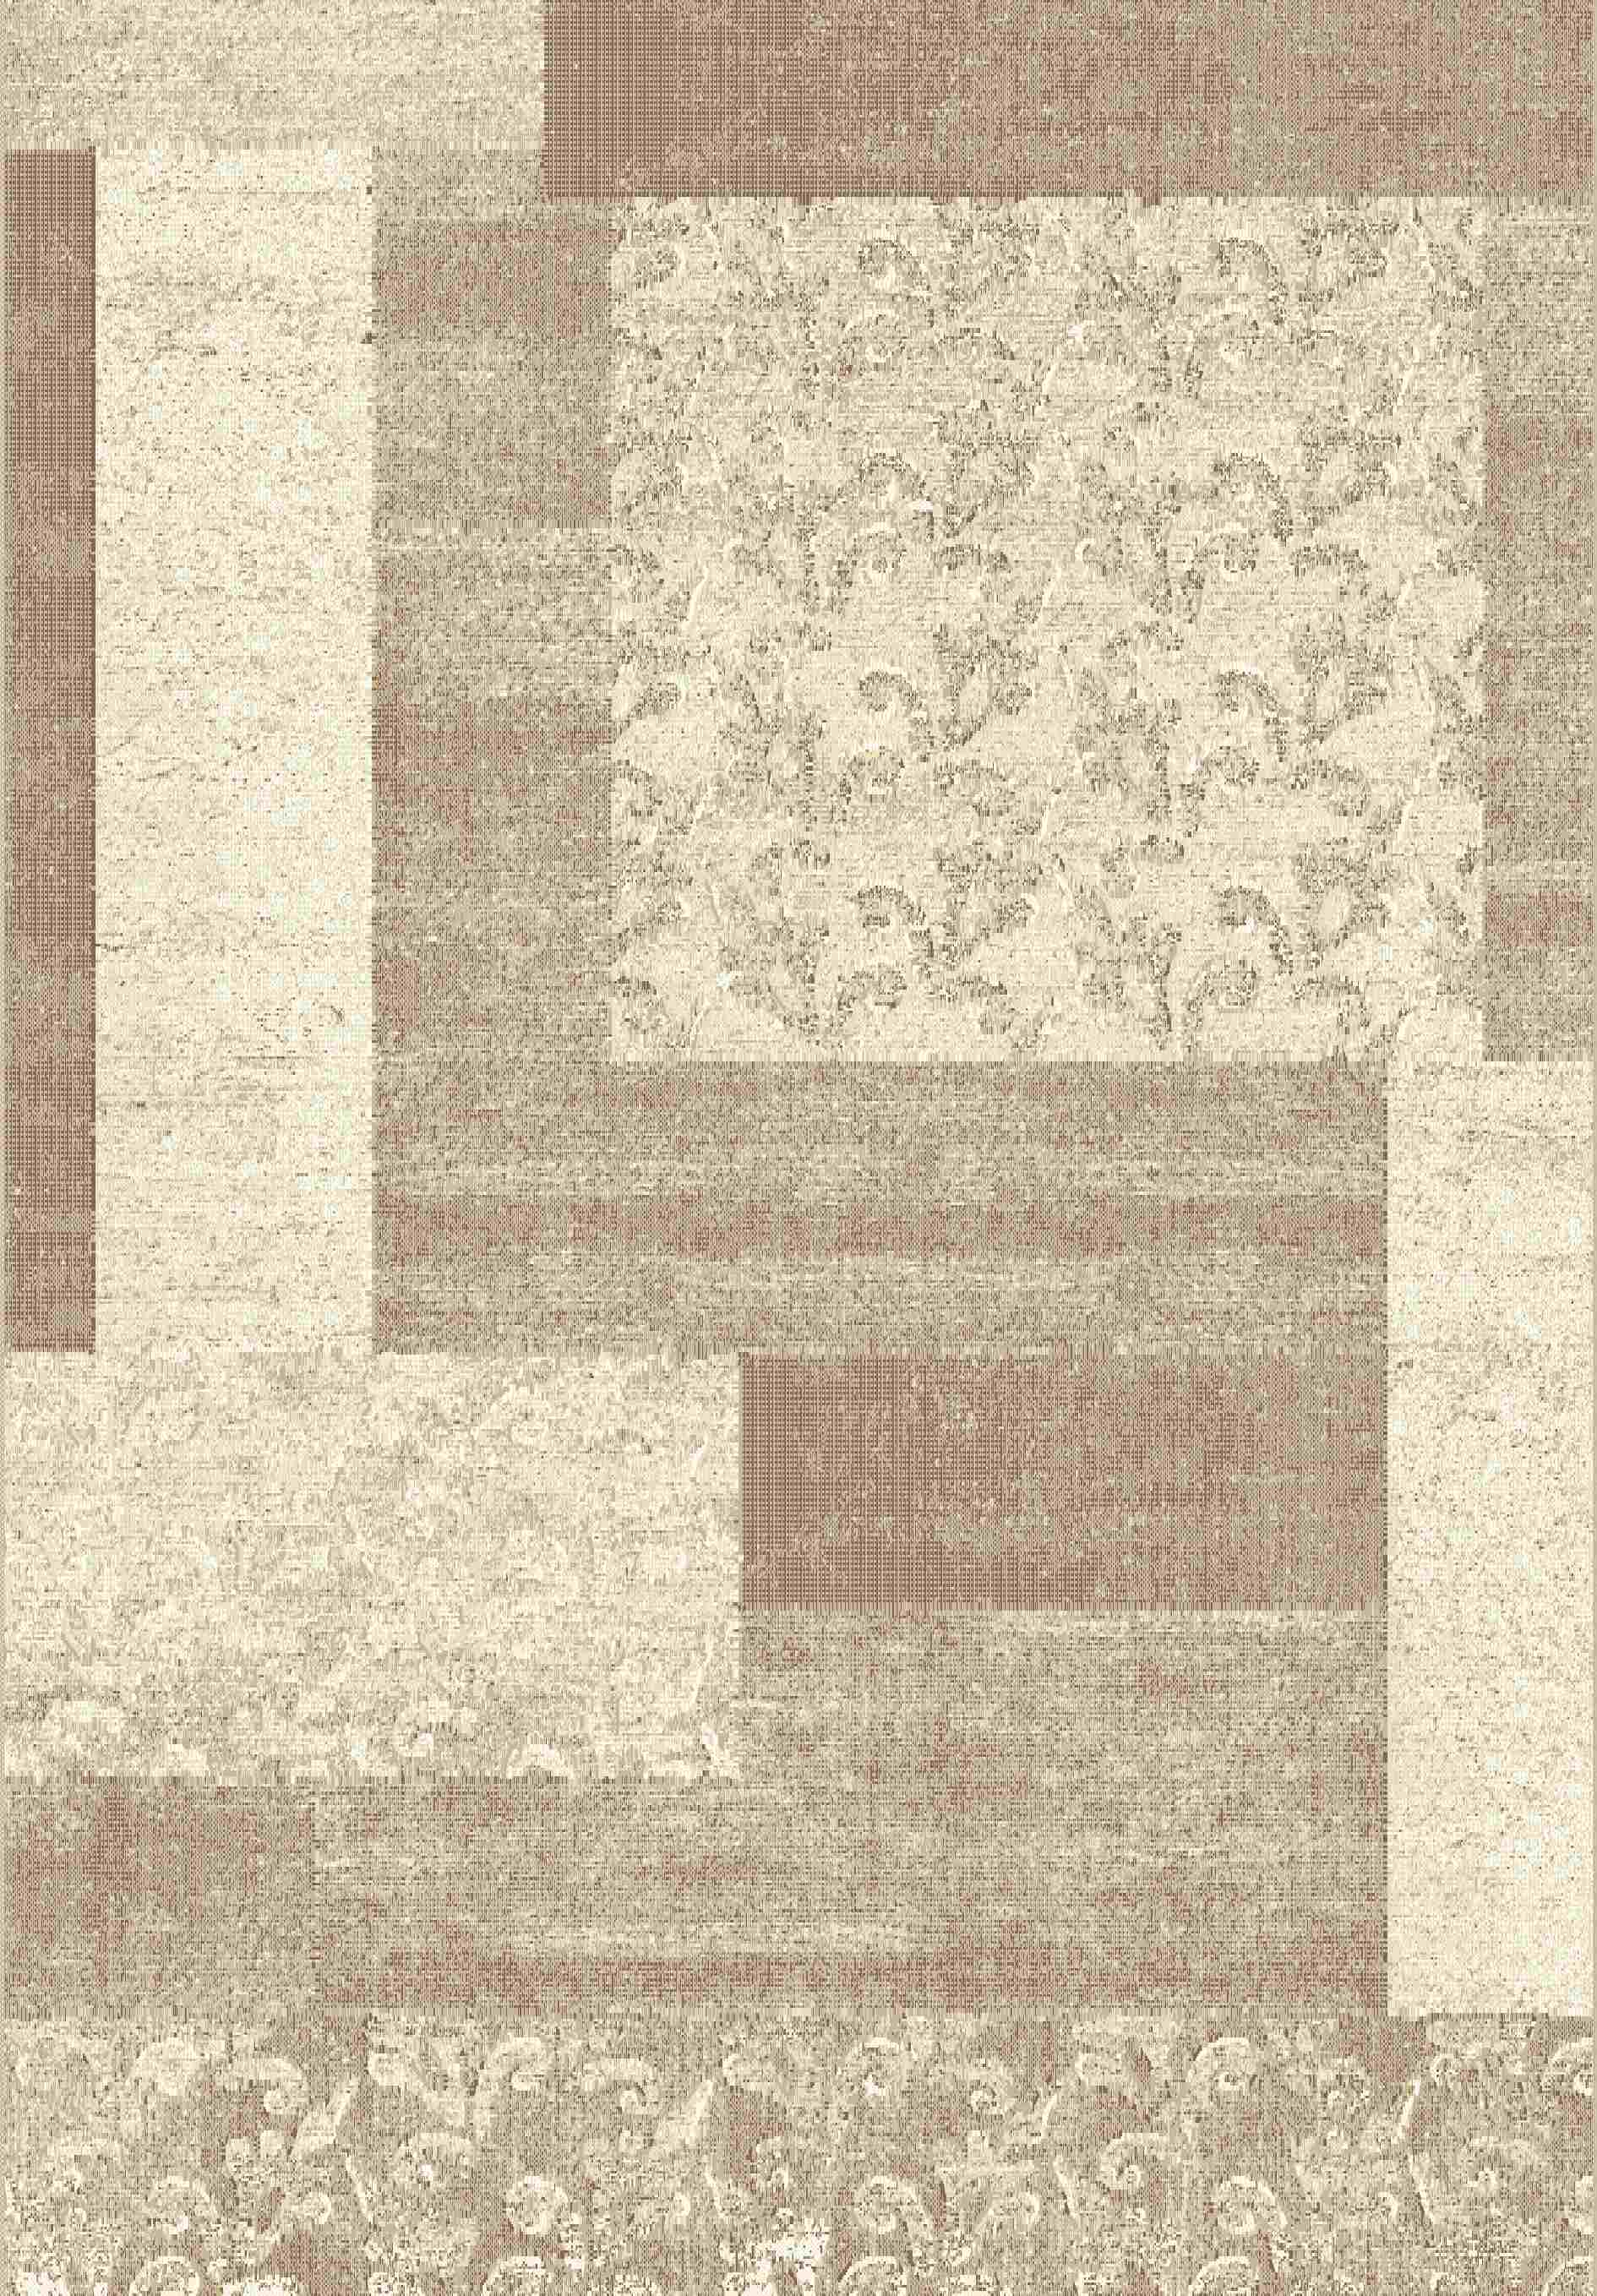 Dynamic Rugs Mysterio Floral Beige 1207 Area Rug